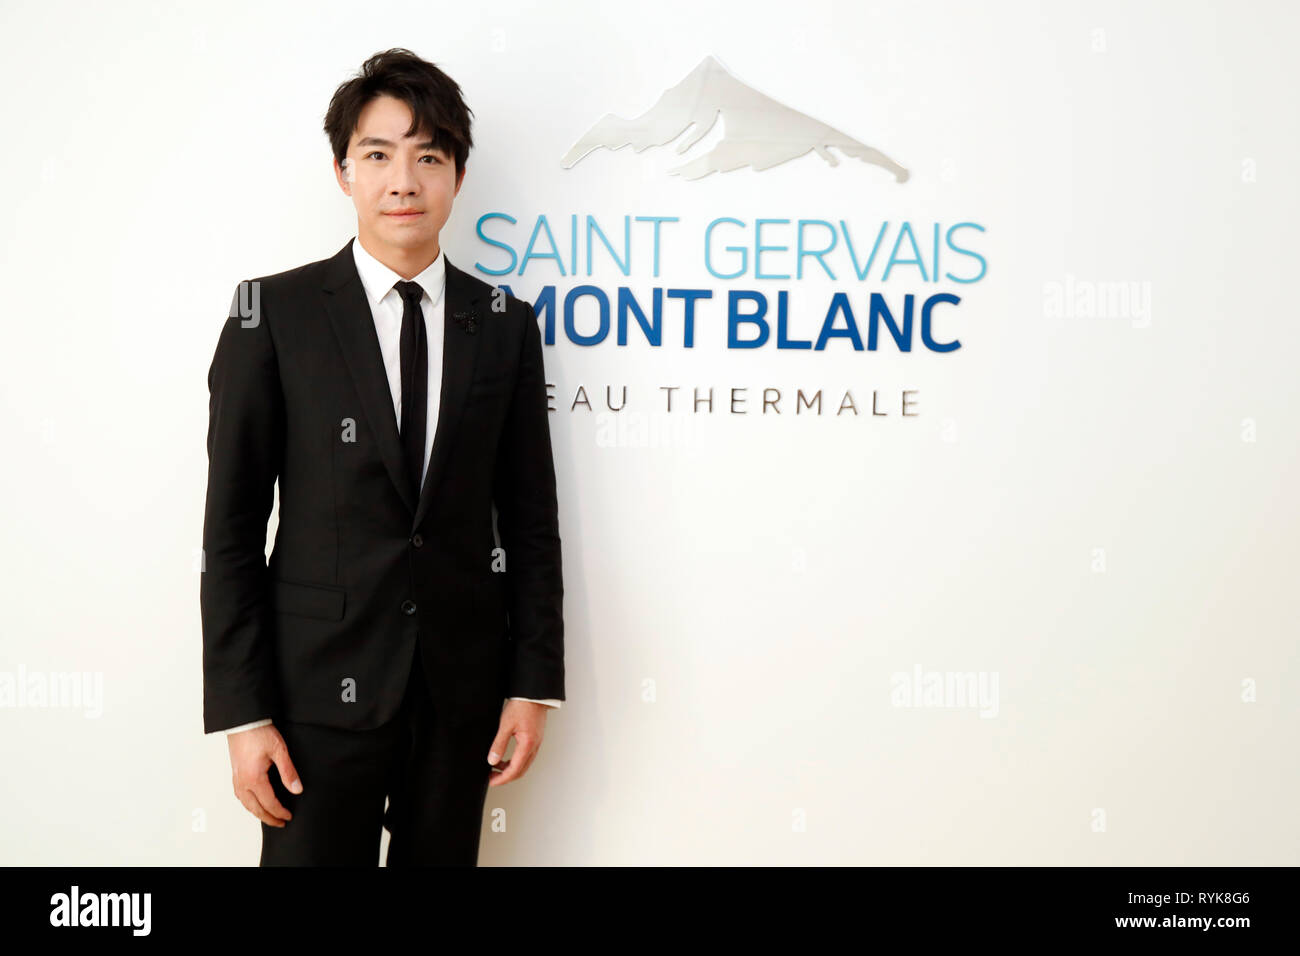 Saint-Gervais Mont-Blanc thermal spa. Yu Haoming. 0pening ceremony on Sept 29 2018.  France. - Stock Image